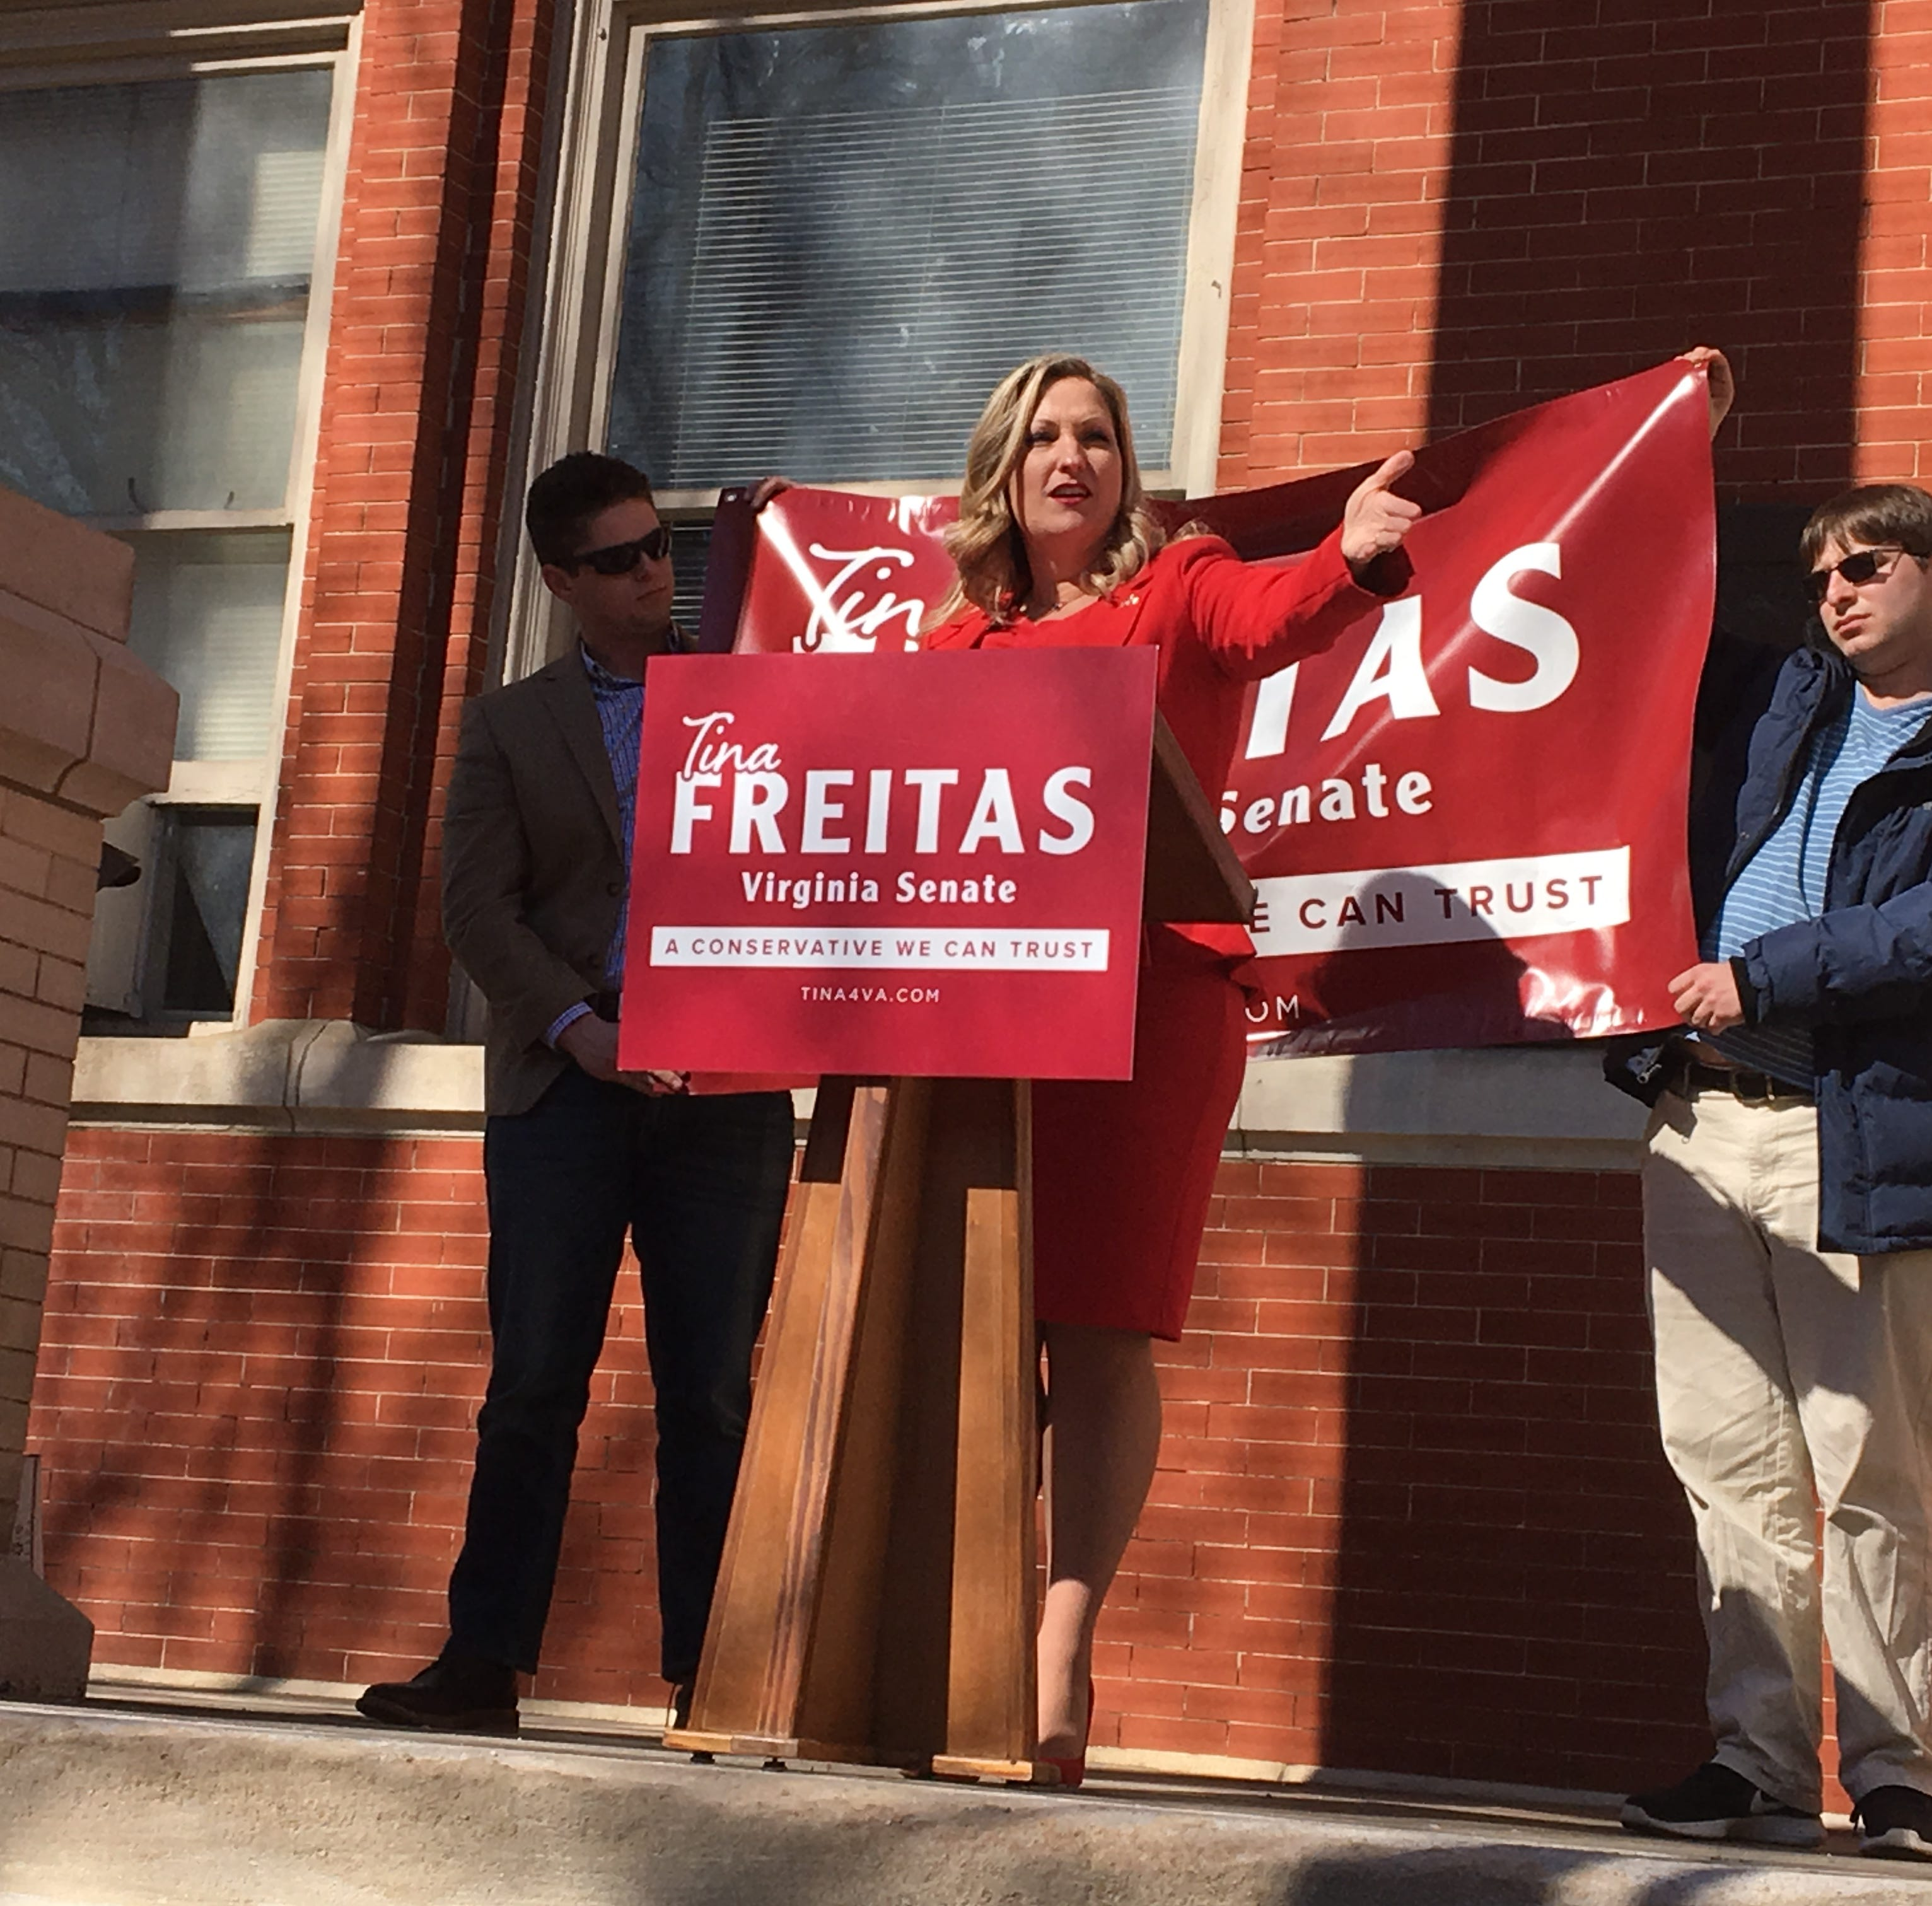 Tina Freitas announces her campaign for the 24th Senate District seat